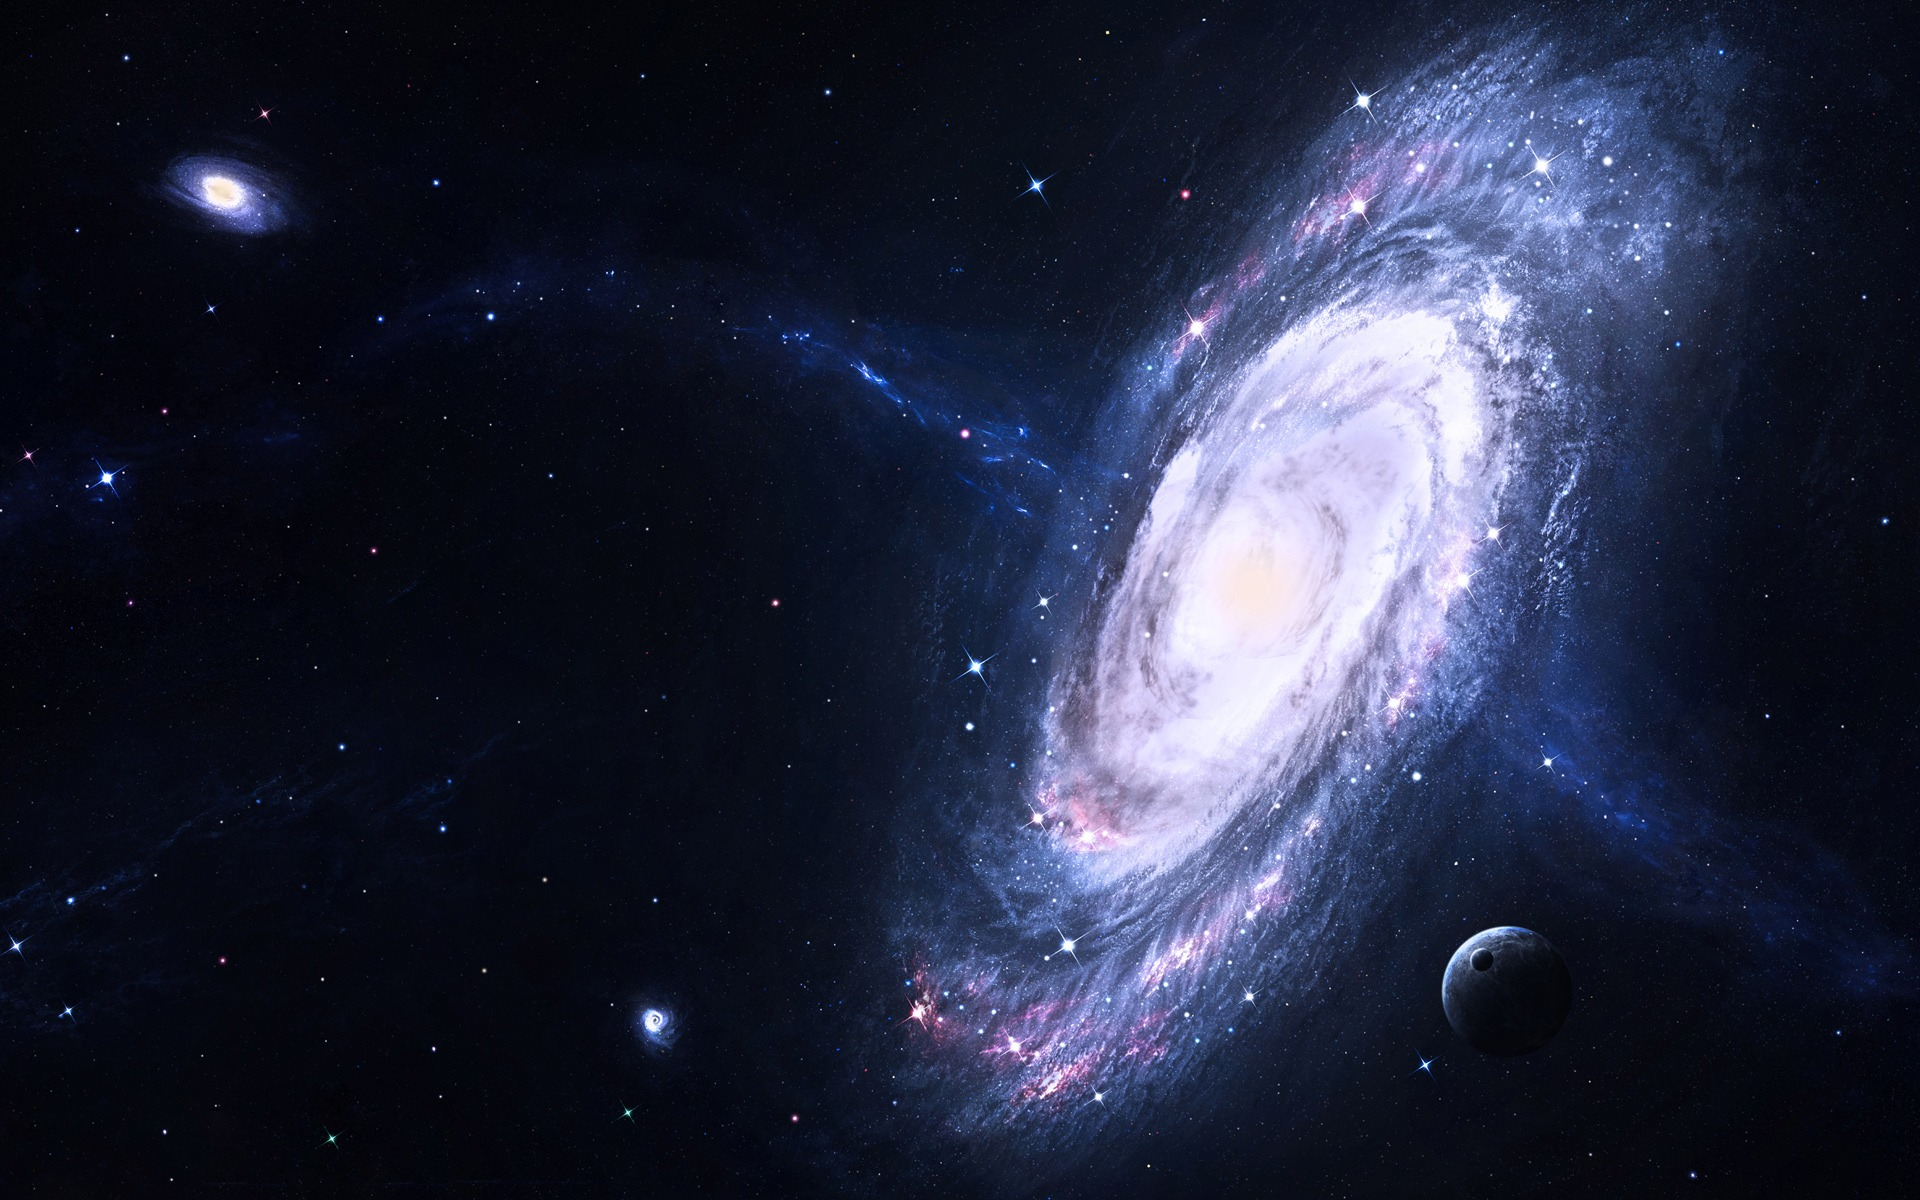 Galaxy Wallpaper Space Nature Wallpapers